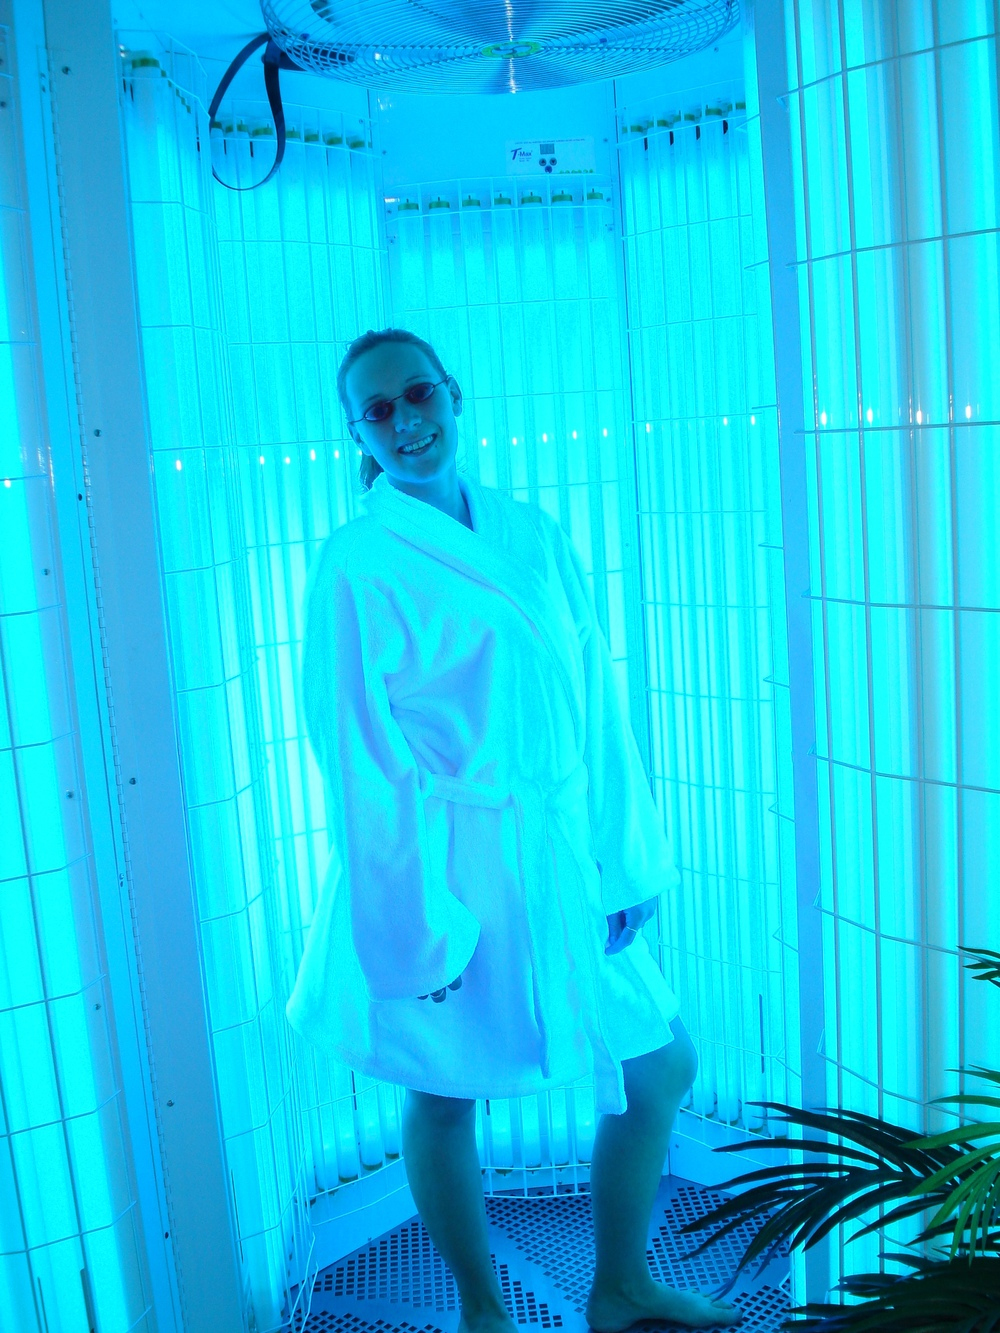 Stand up tanning bed